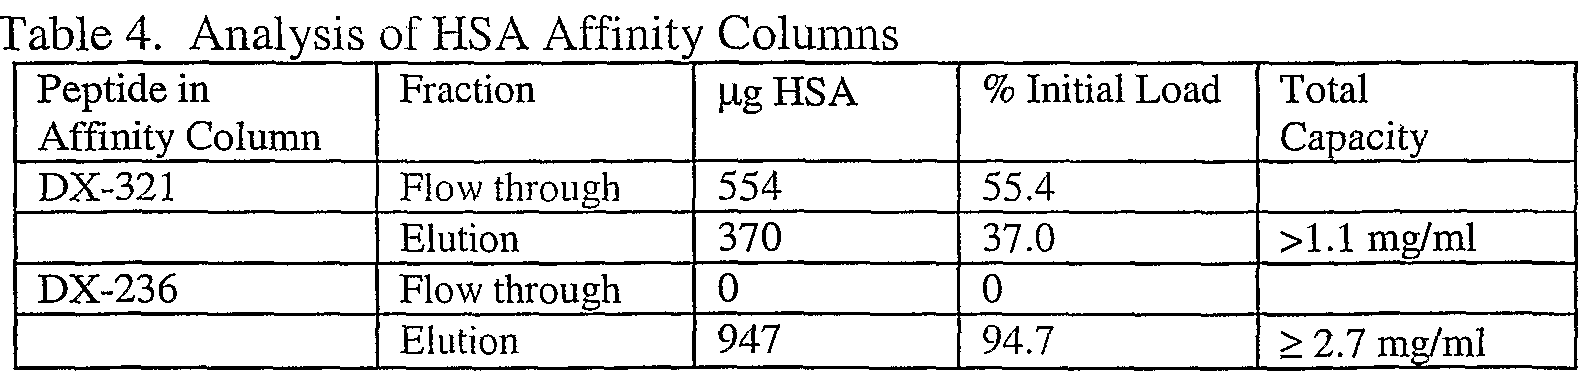 WO2003106493A1 - Protein analysis - Google Patents